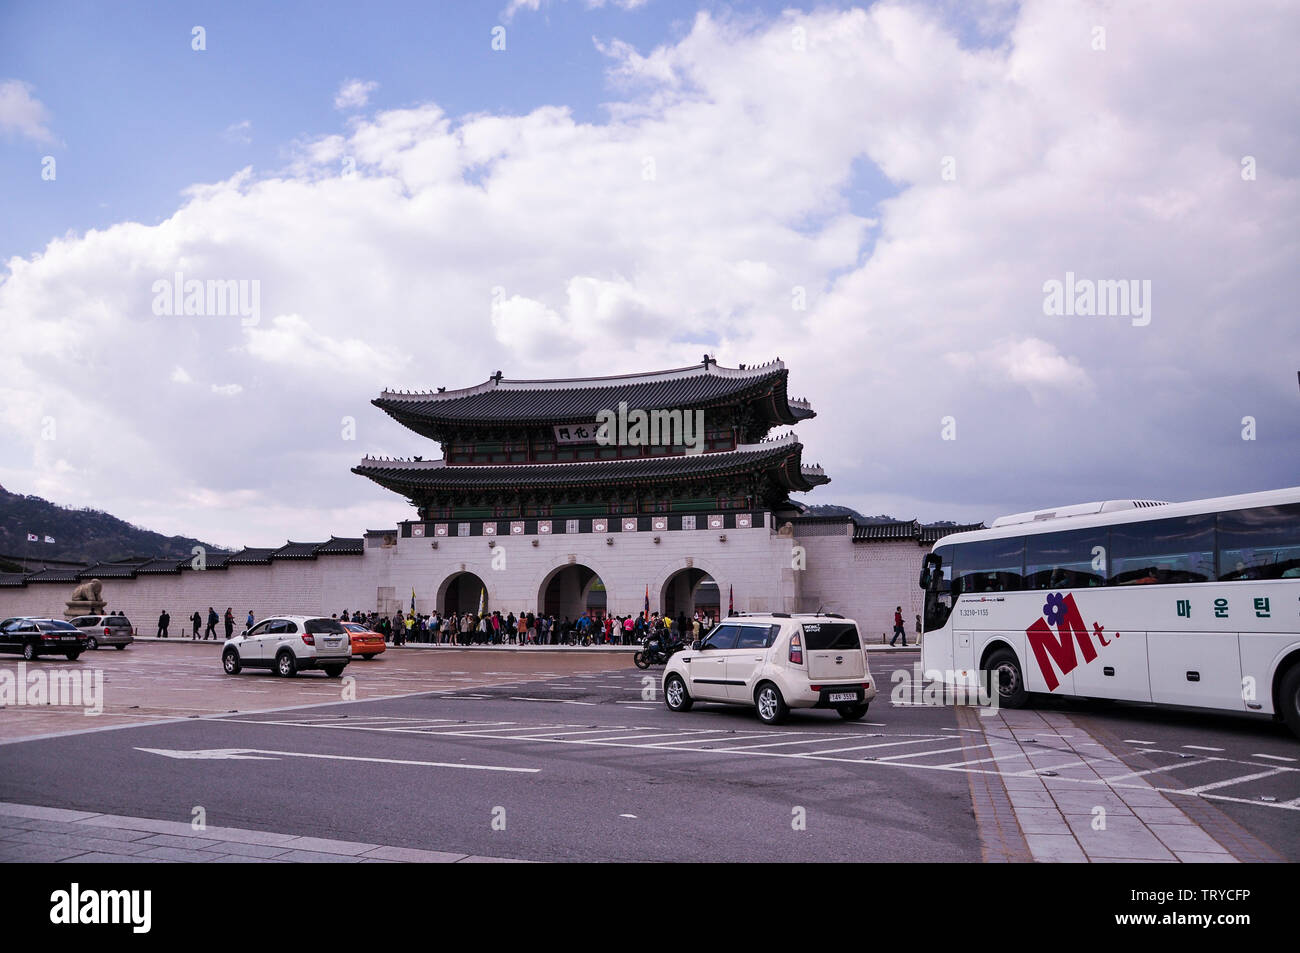 Seoul, Korea, 1st, May, 2013. Front view of Gwanghwamun, is the main and largest gate of Gyeongbokgung Palace, in Jongno-gu, Seoul, South Korea. Stock Photo